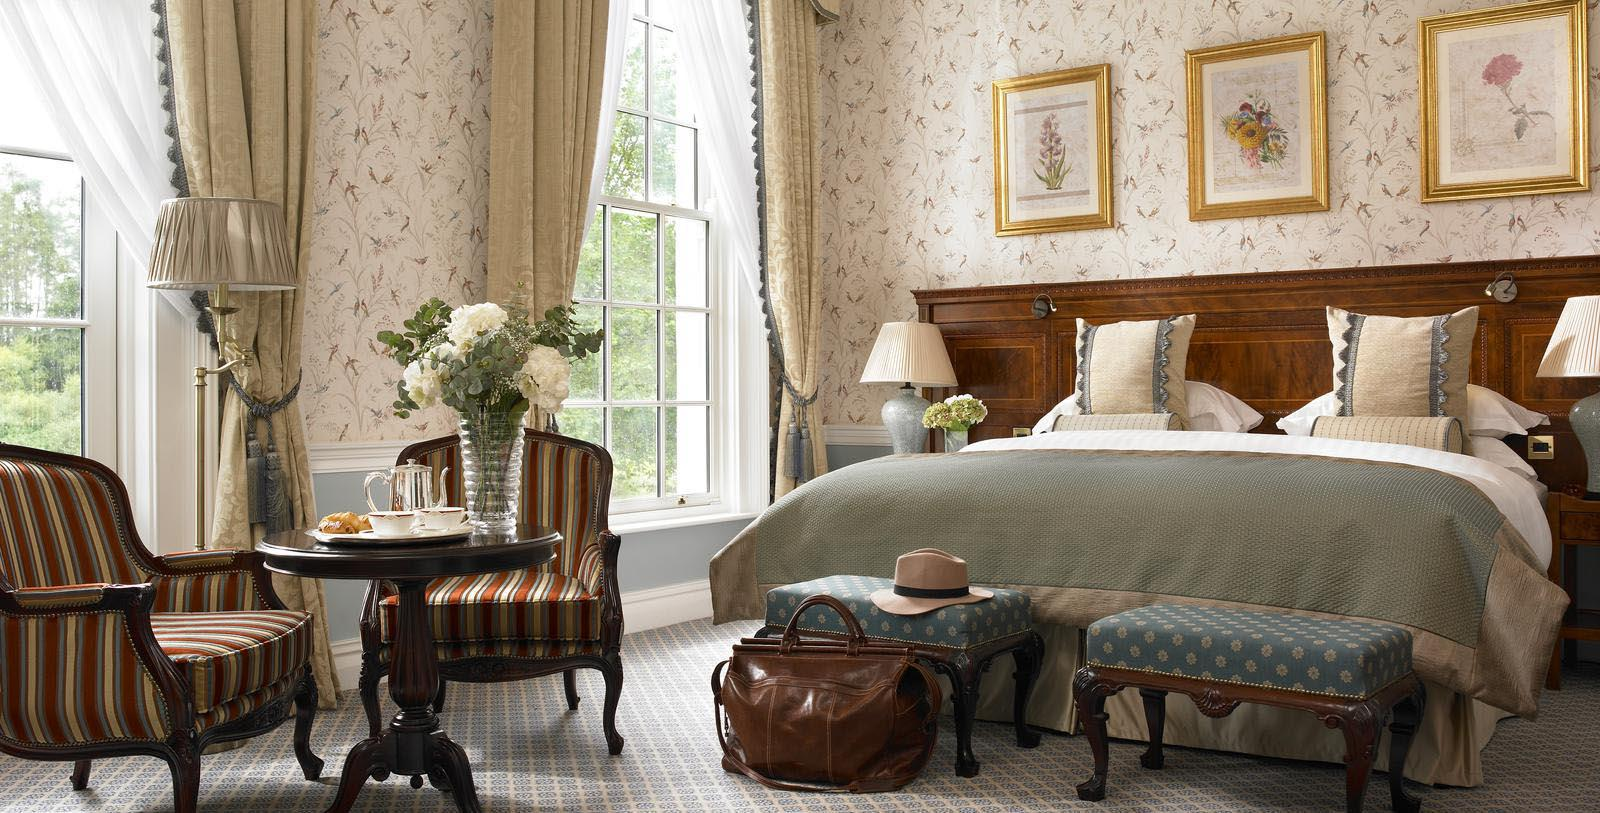 Image of Guestroom at The K Club, 550, Member of Historic Hotels Worldwide, in Straffan, County Kildare, Ireland, Accommodations